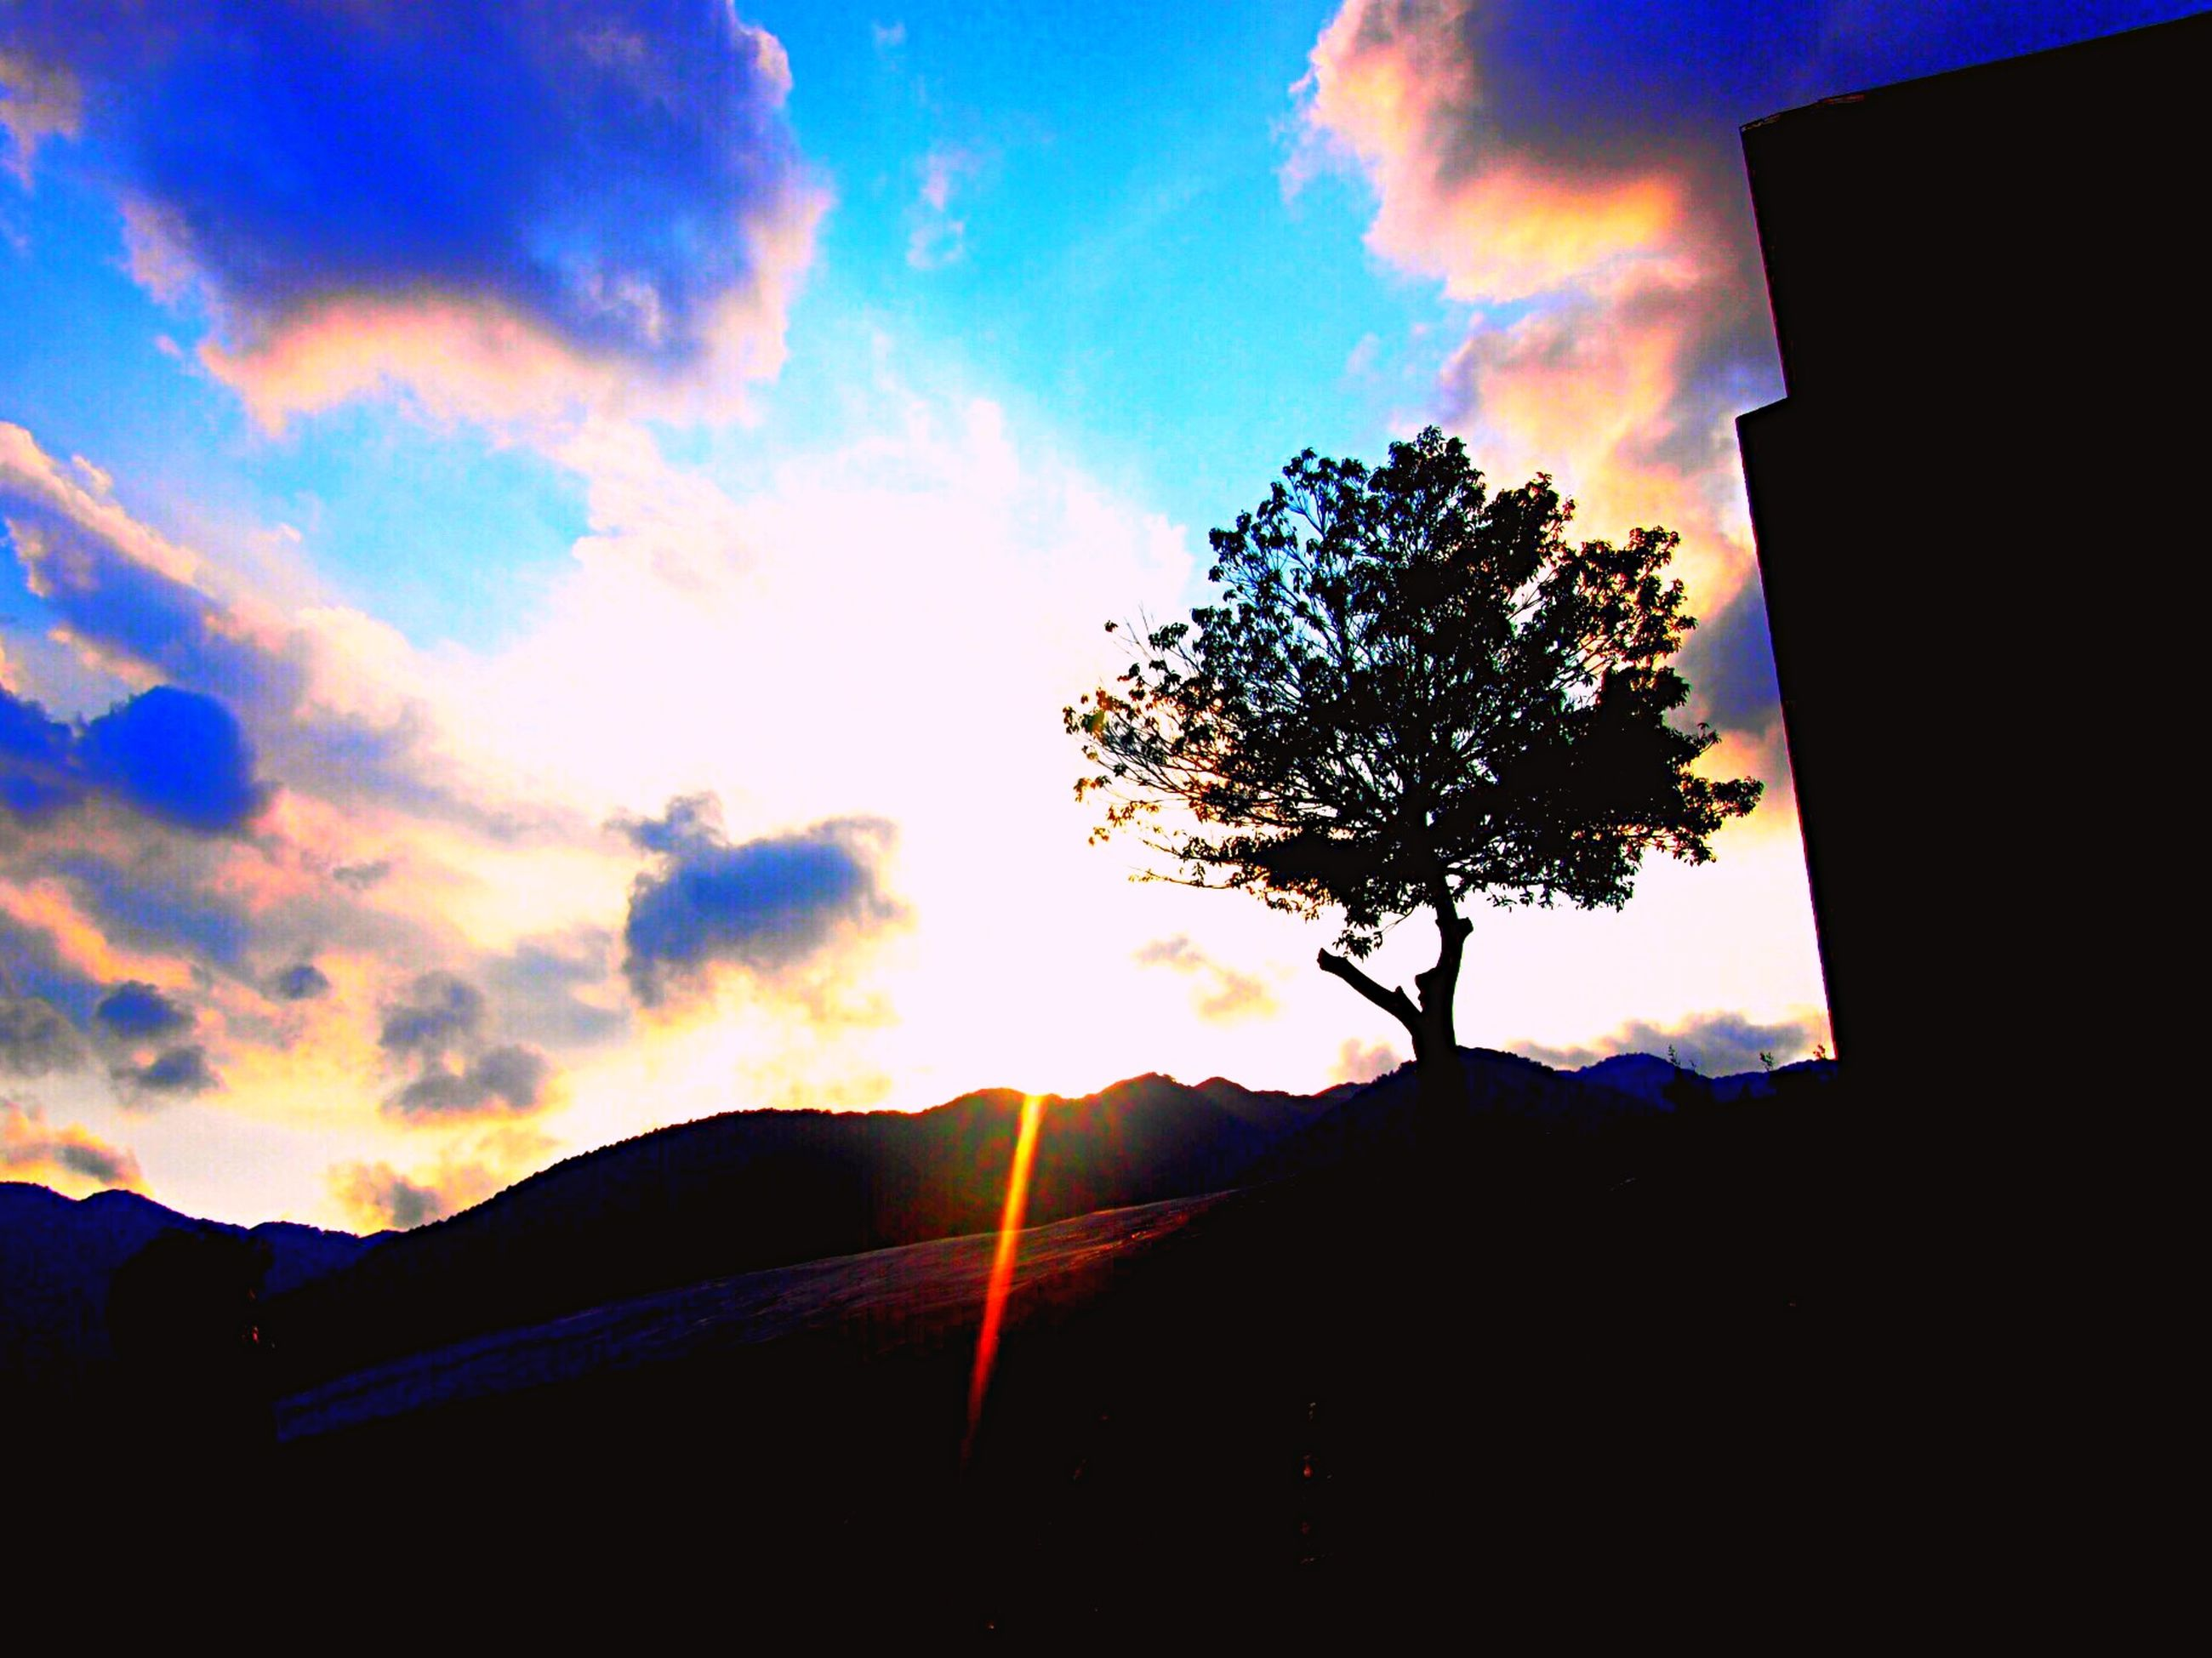 silhouette, sunset, sky, sun, tree, cloud - sky, beauty in nature, scenics, tranquility, built structure, low angle view, cloud, sunlight, tranquil scene, nature, building exterior, architecture, dark, back lit, outline